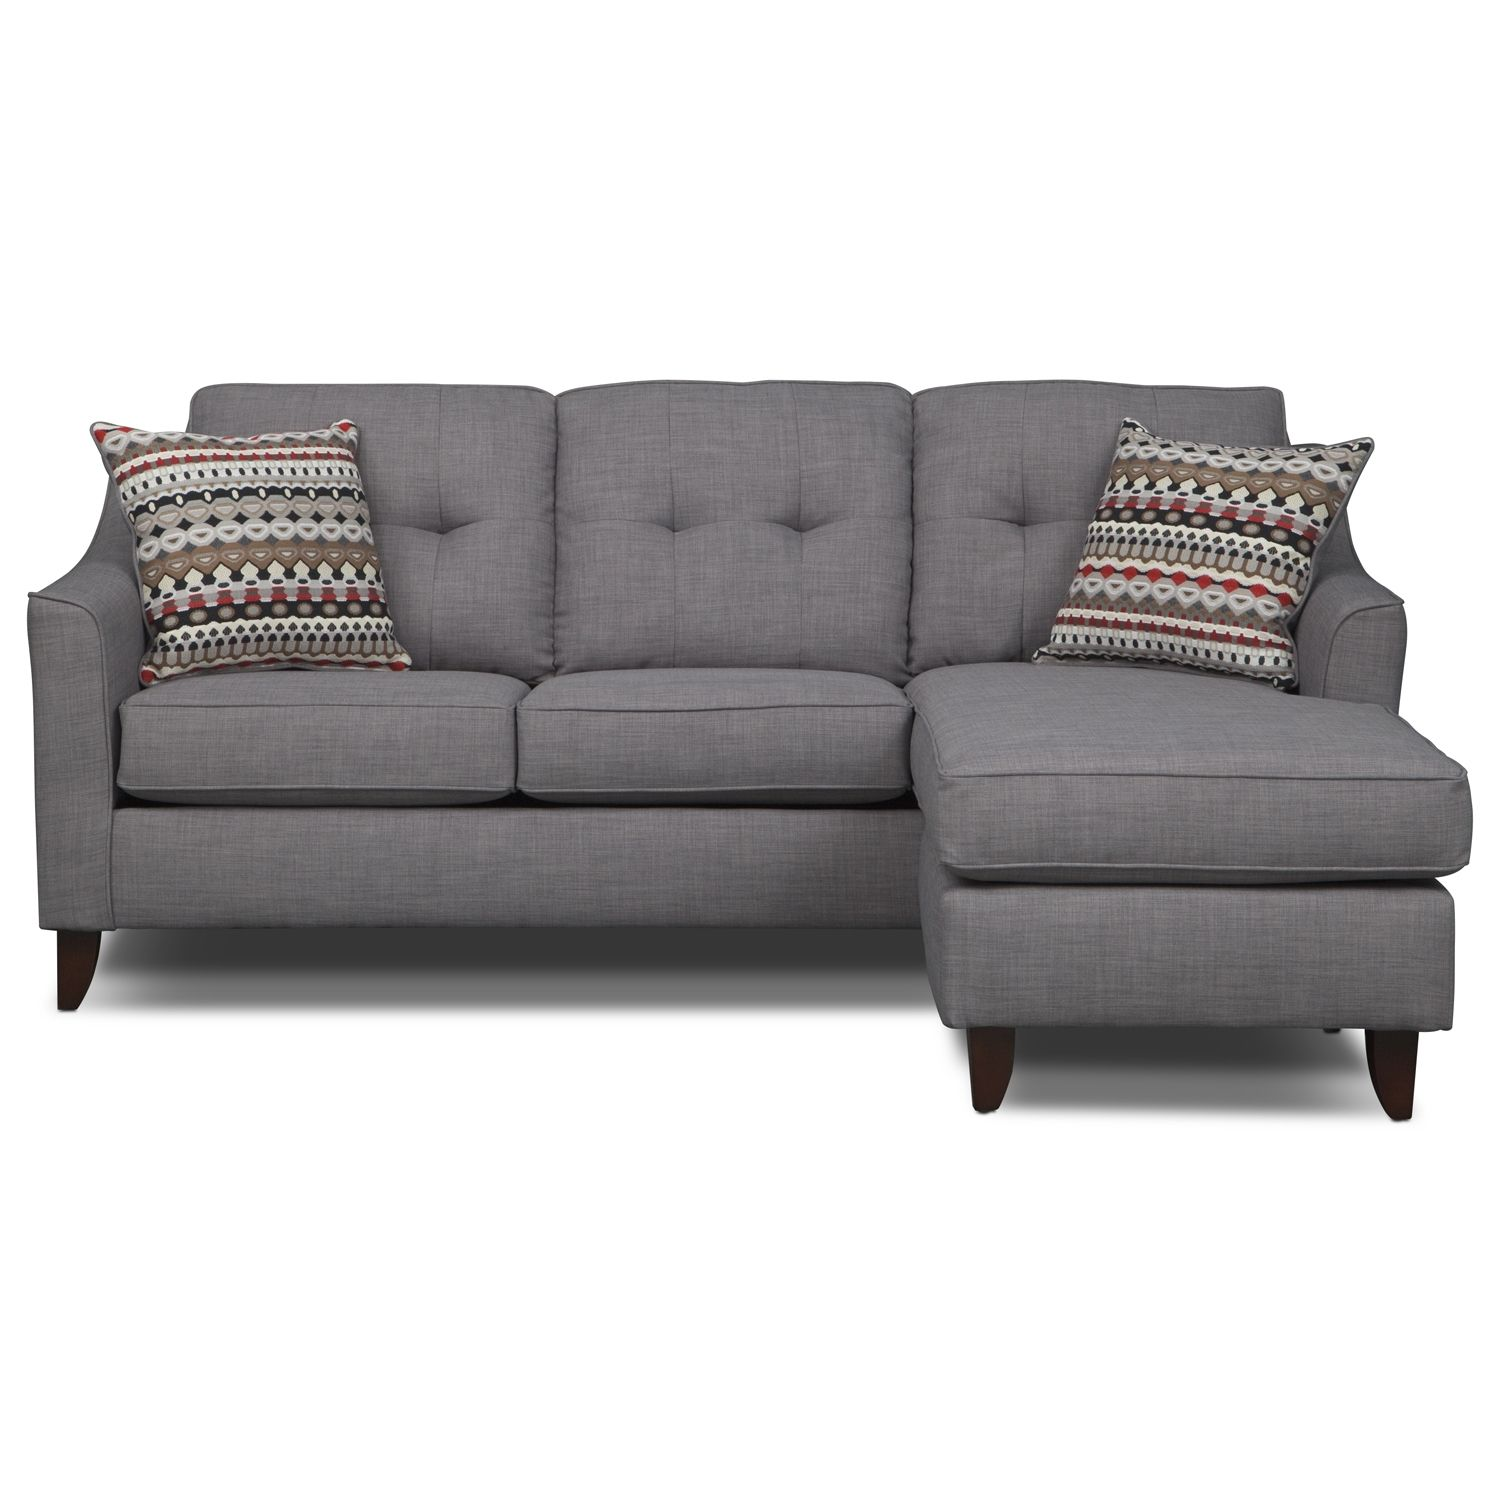 Clarke Fabric Sectional Sofa Collection Created for Macy s